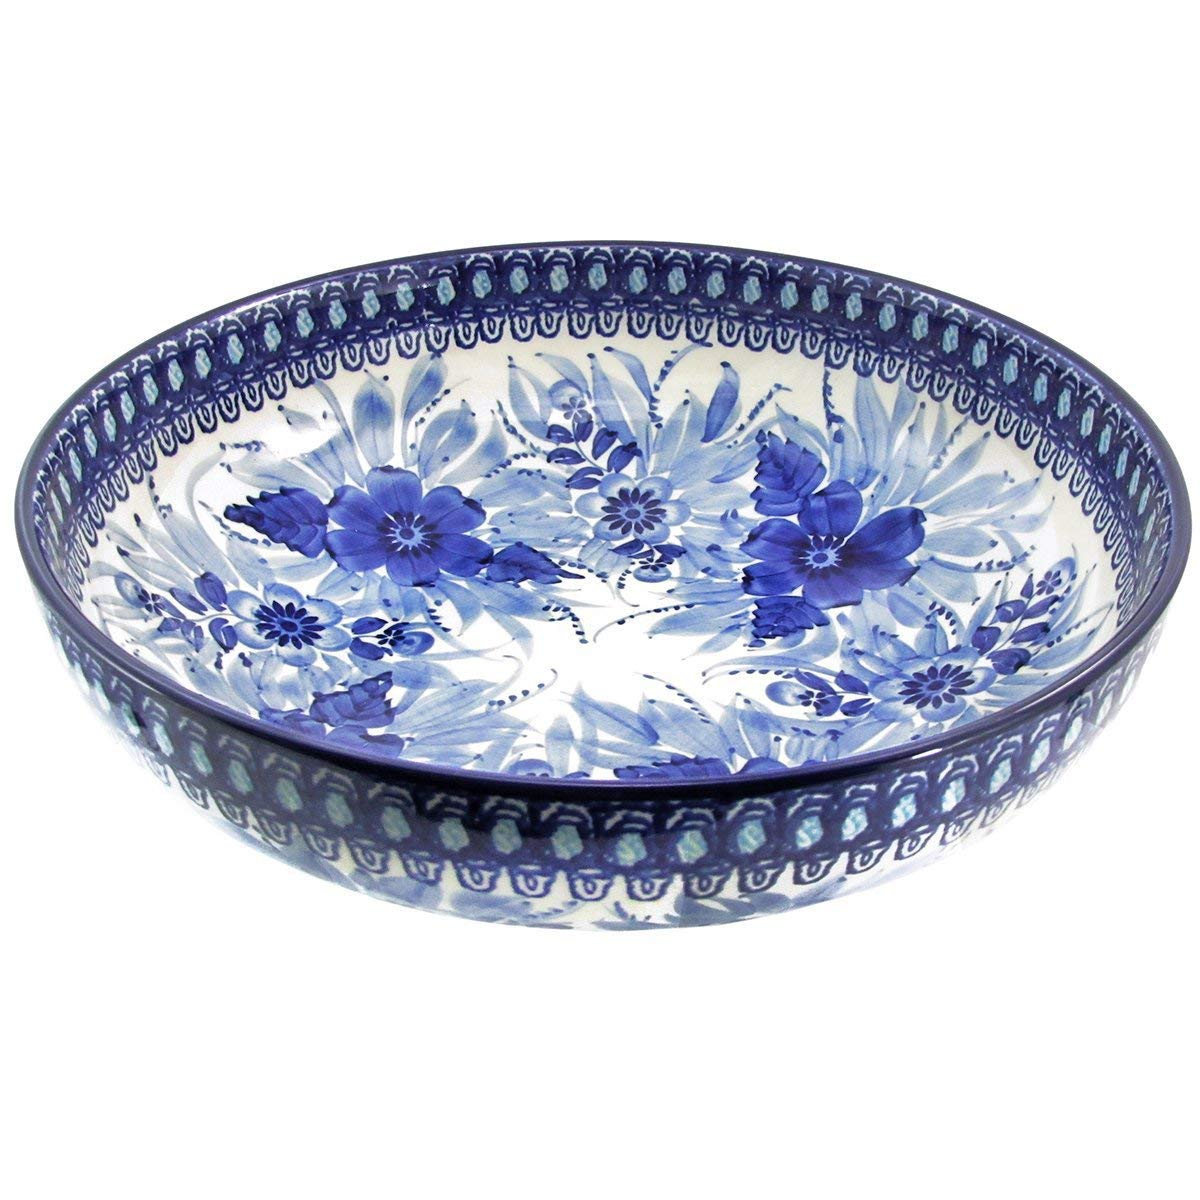 Polish Pottery Handmade Vintage Unikat 10.5'' 2 QT SERVING BOWL - U214 by Great2bHome Polish Pottery and Unique Gifts (Image #1)